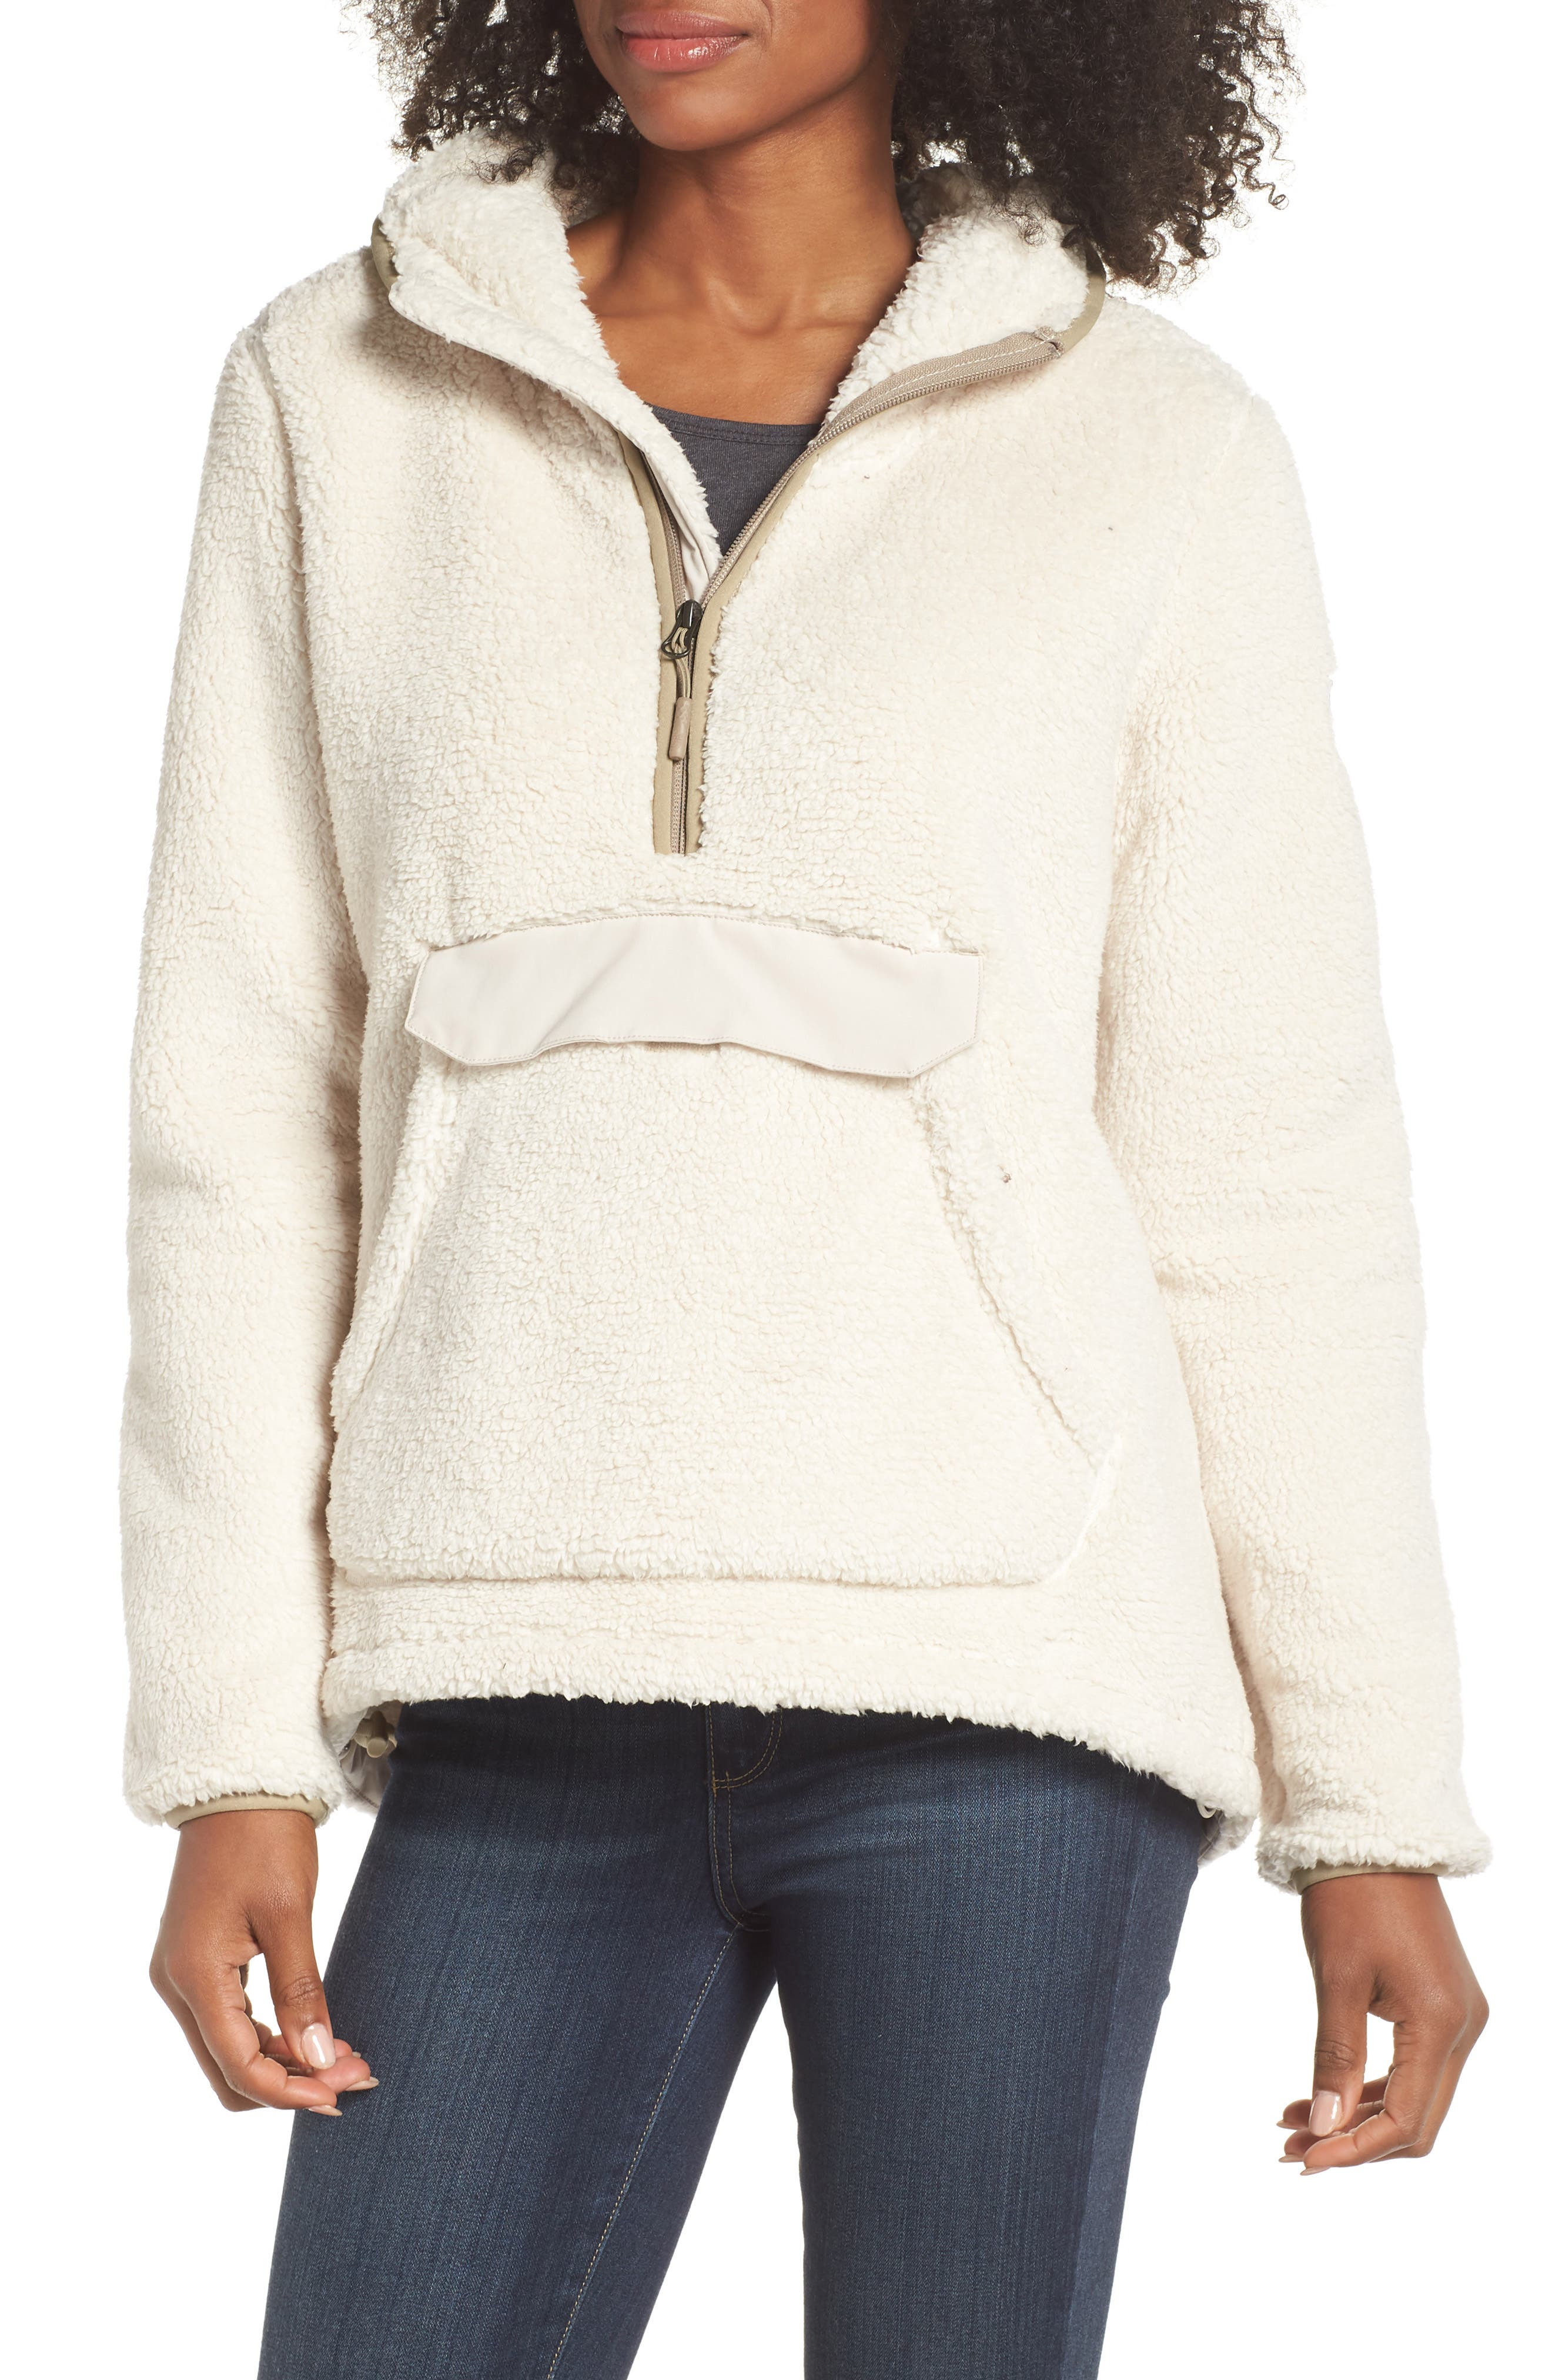 Campshire High Pile Fleece Pullover Hoodie,                         Main,                         color, Vintage White/ Peyote Beige